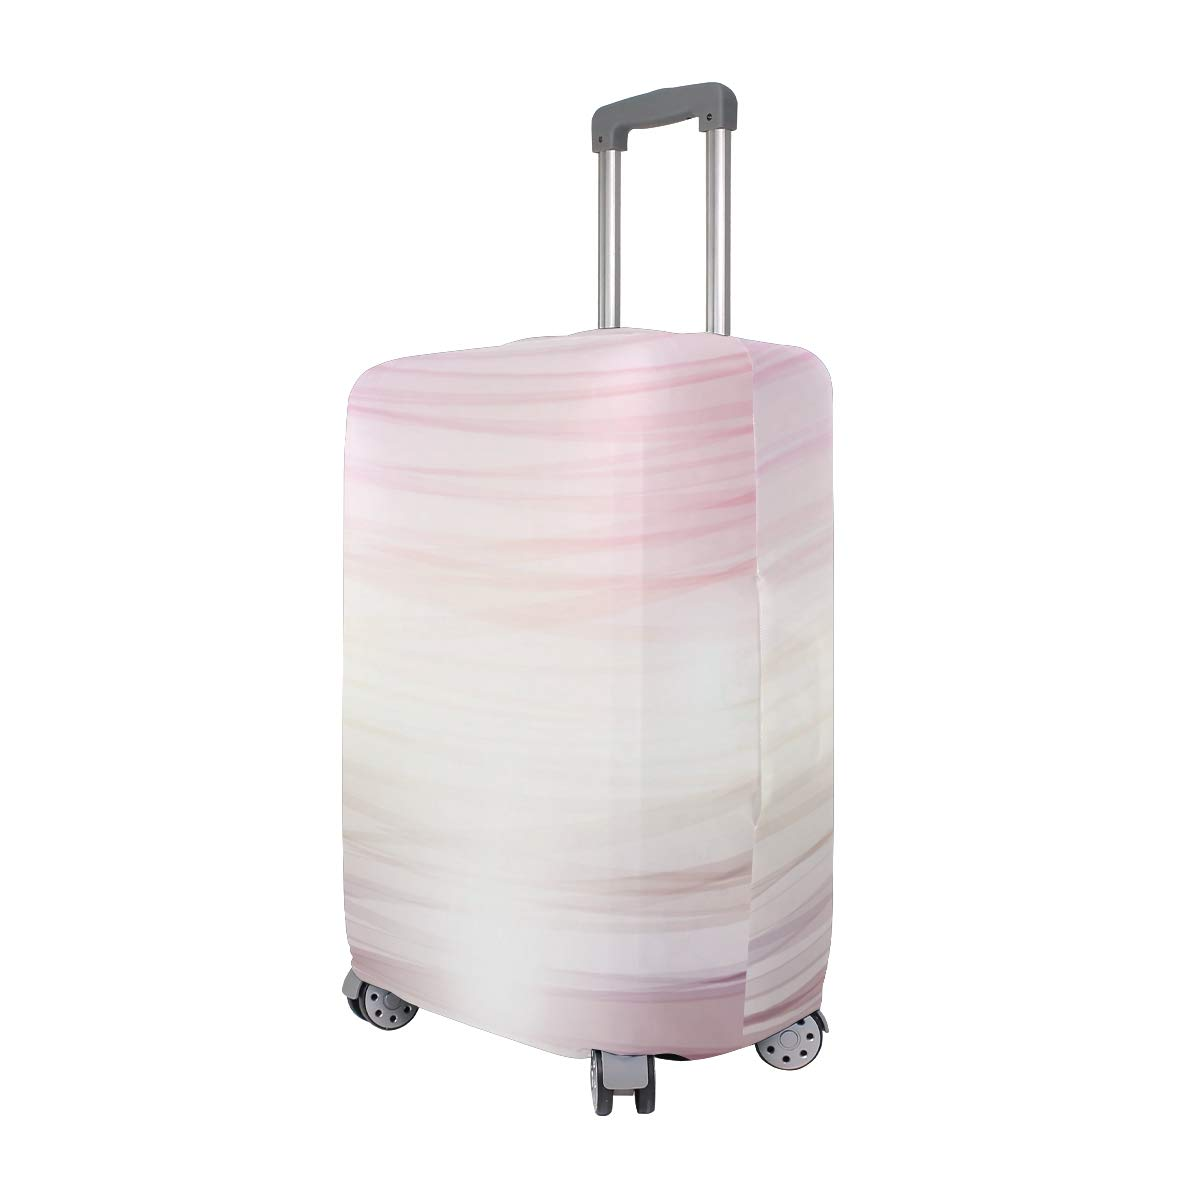 Pink Duffle Bag Traveler Lightweight Rotating Luggage Protector Case Can Carry With You Can Expand Travel Bag Trolley Rolling Luggage Protector Case